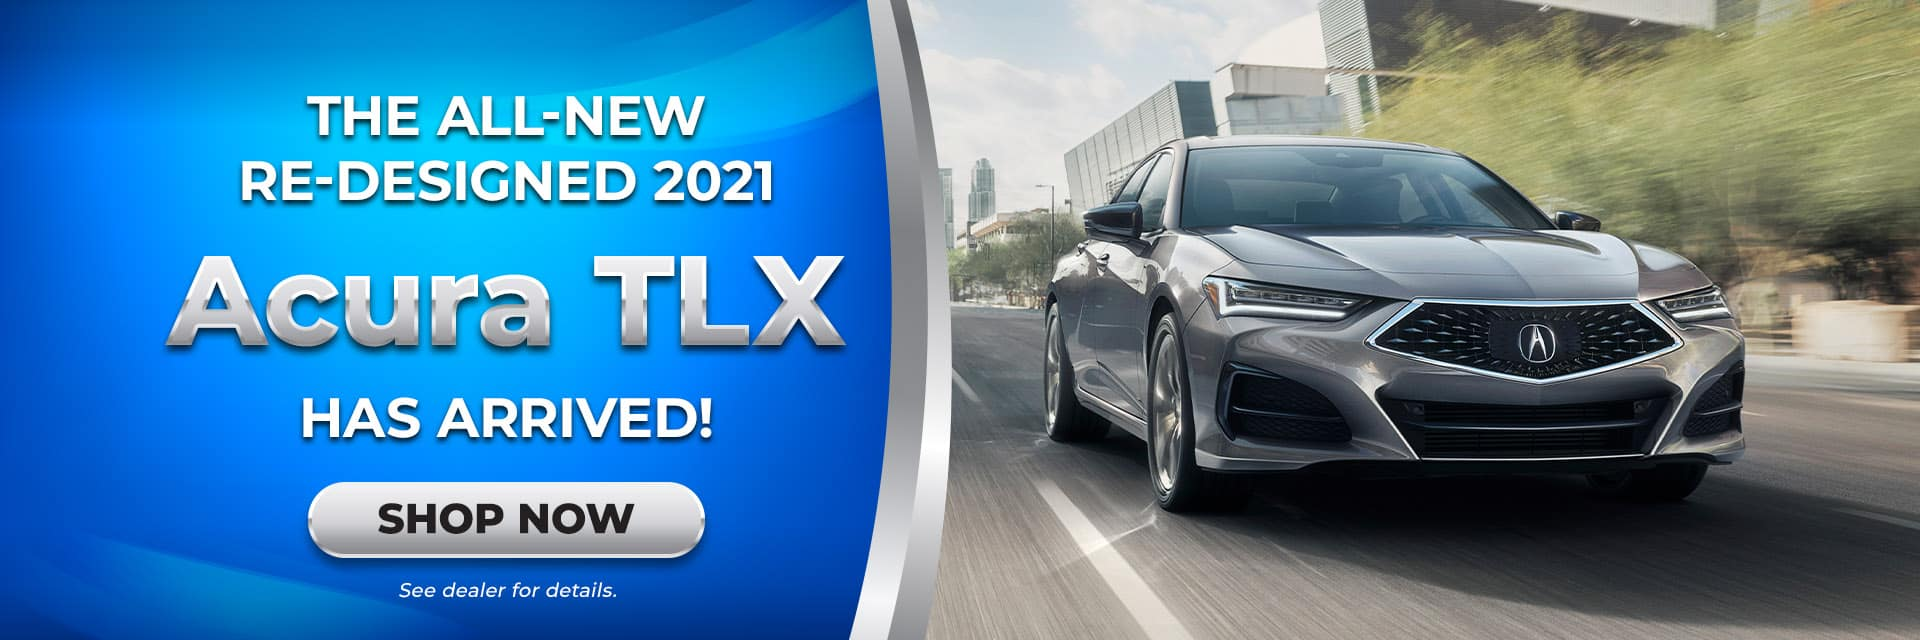 2021 Acura TLX is available at Ed Voyles Kia of Chamblee, GA